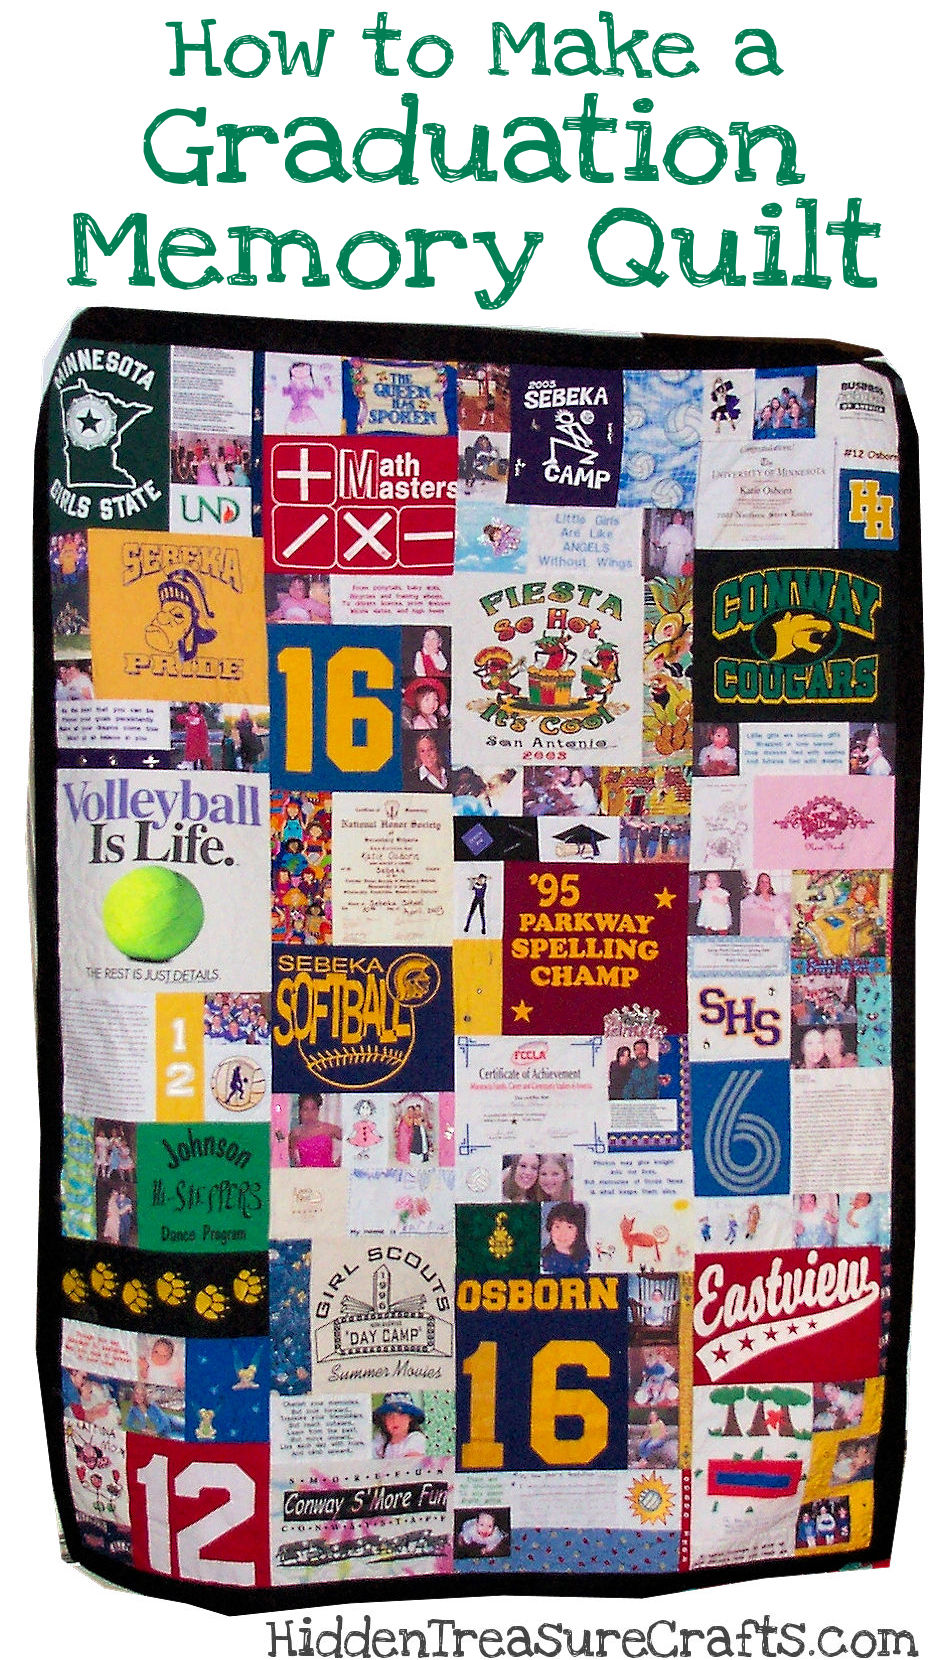 How To Make A Graduation Memory Quilt